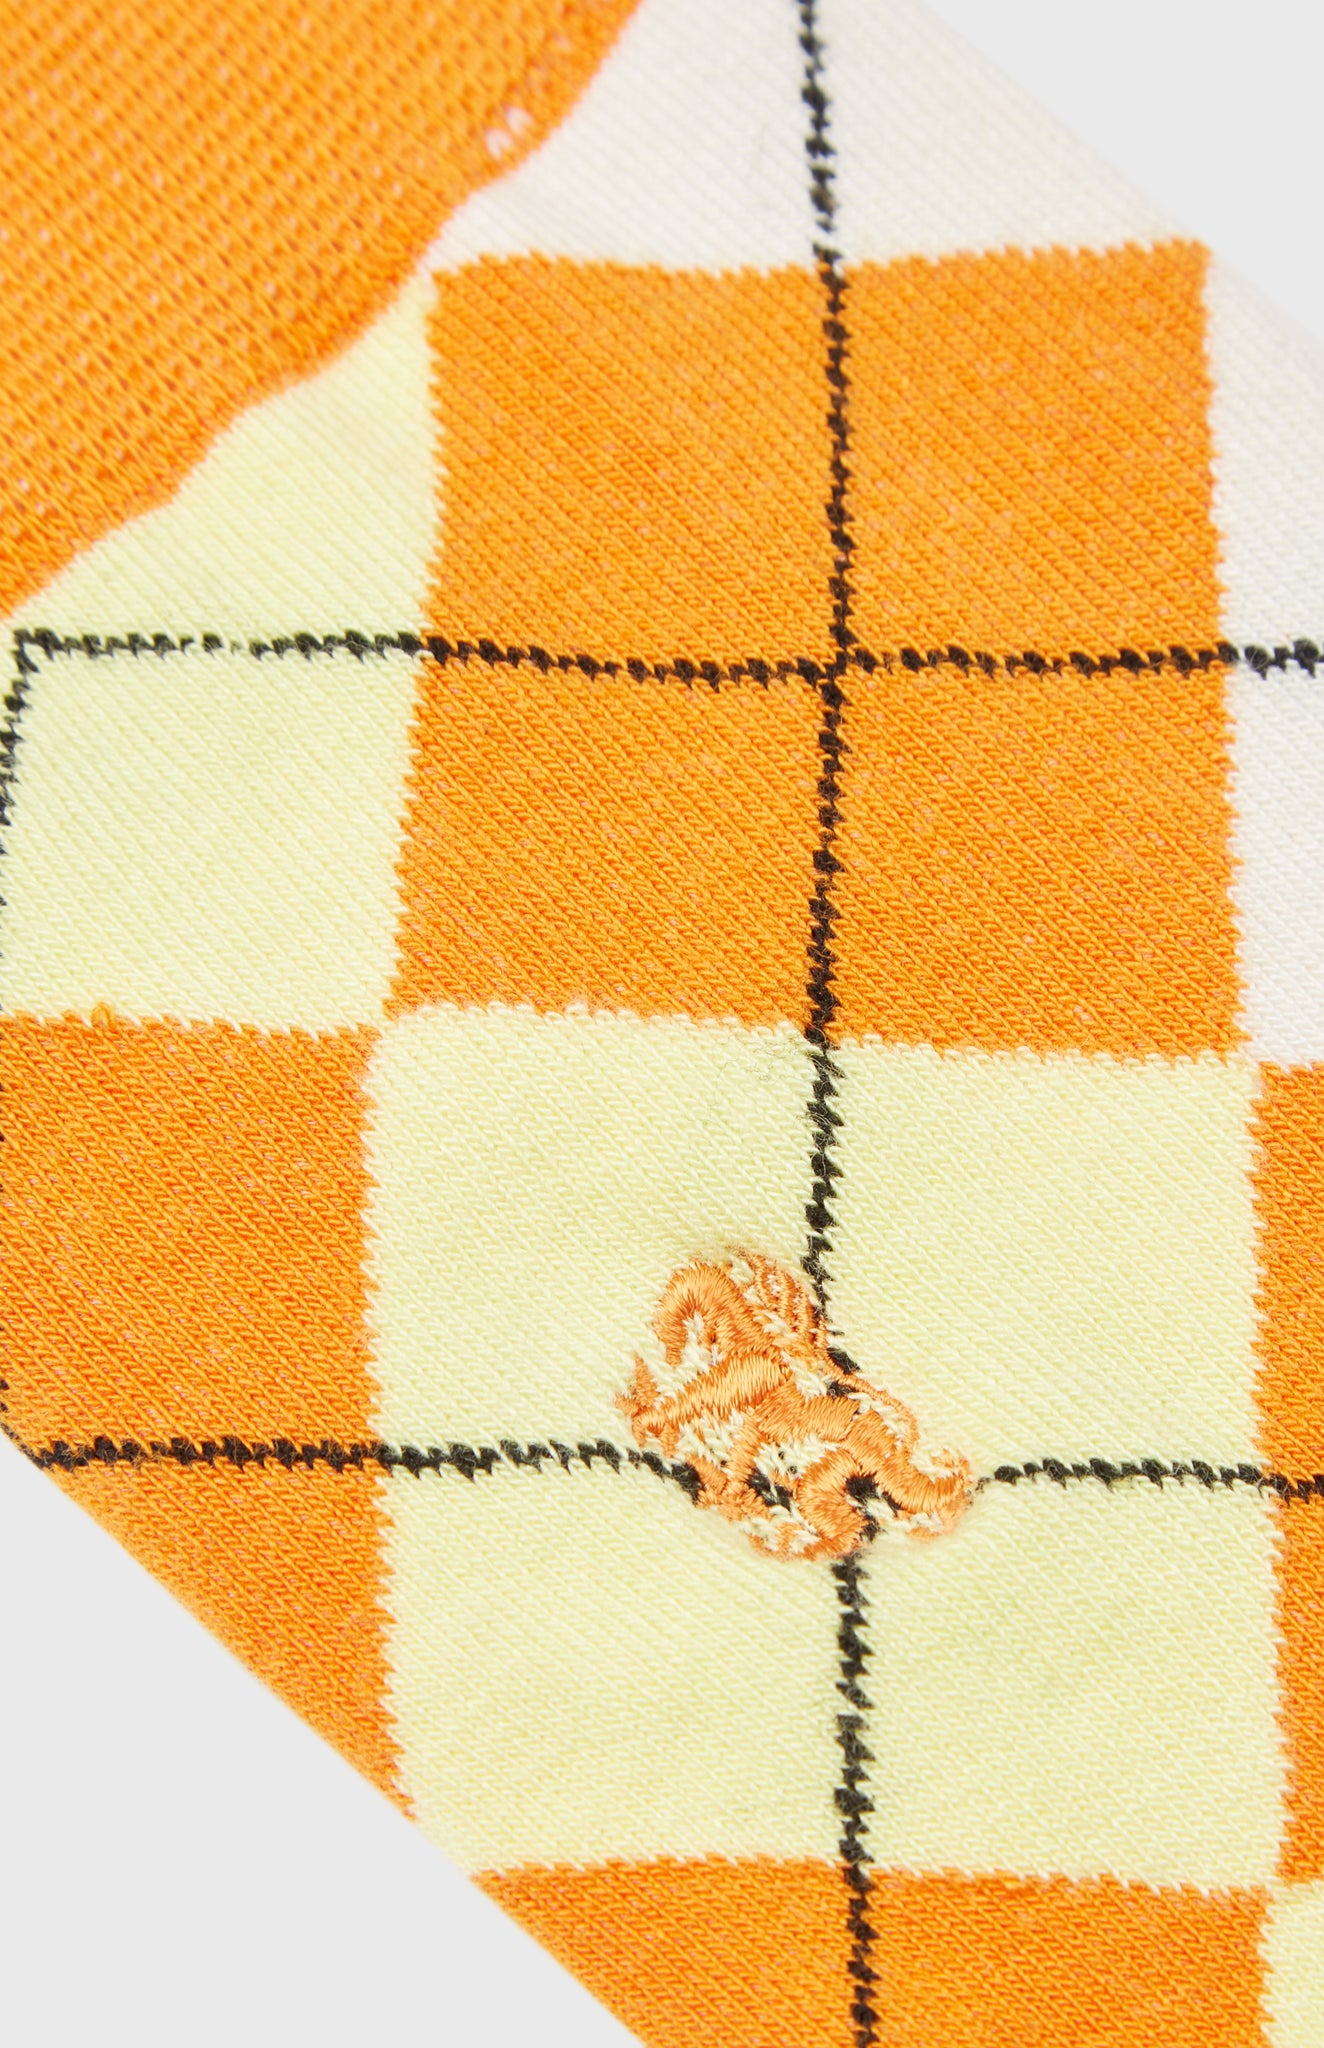 Pringle Reissued Women's Classic Argyle Socks In Multi Orange